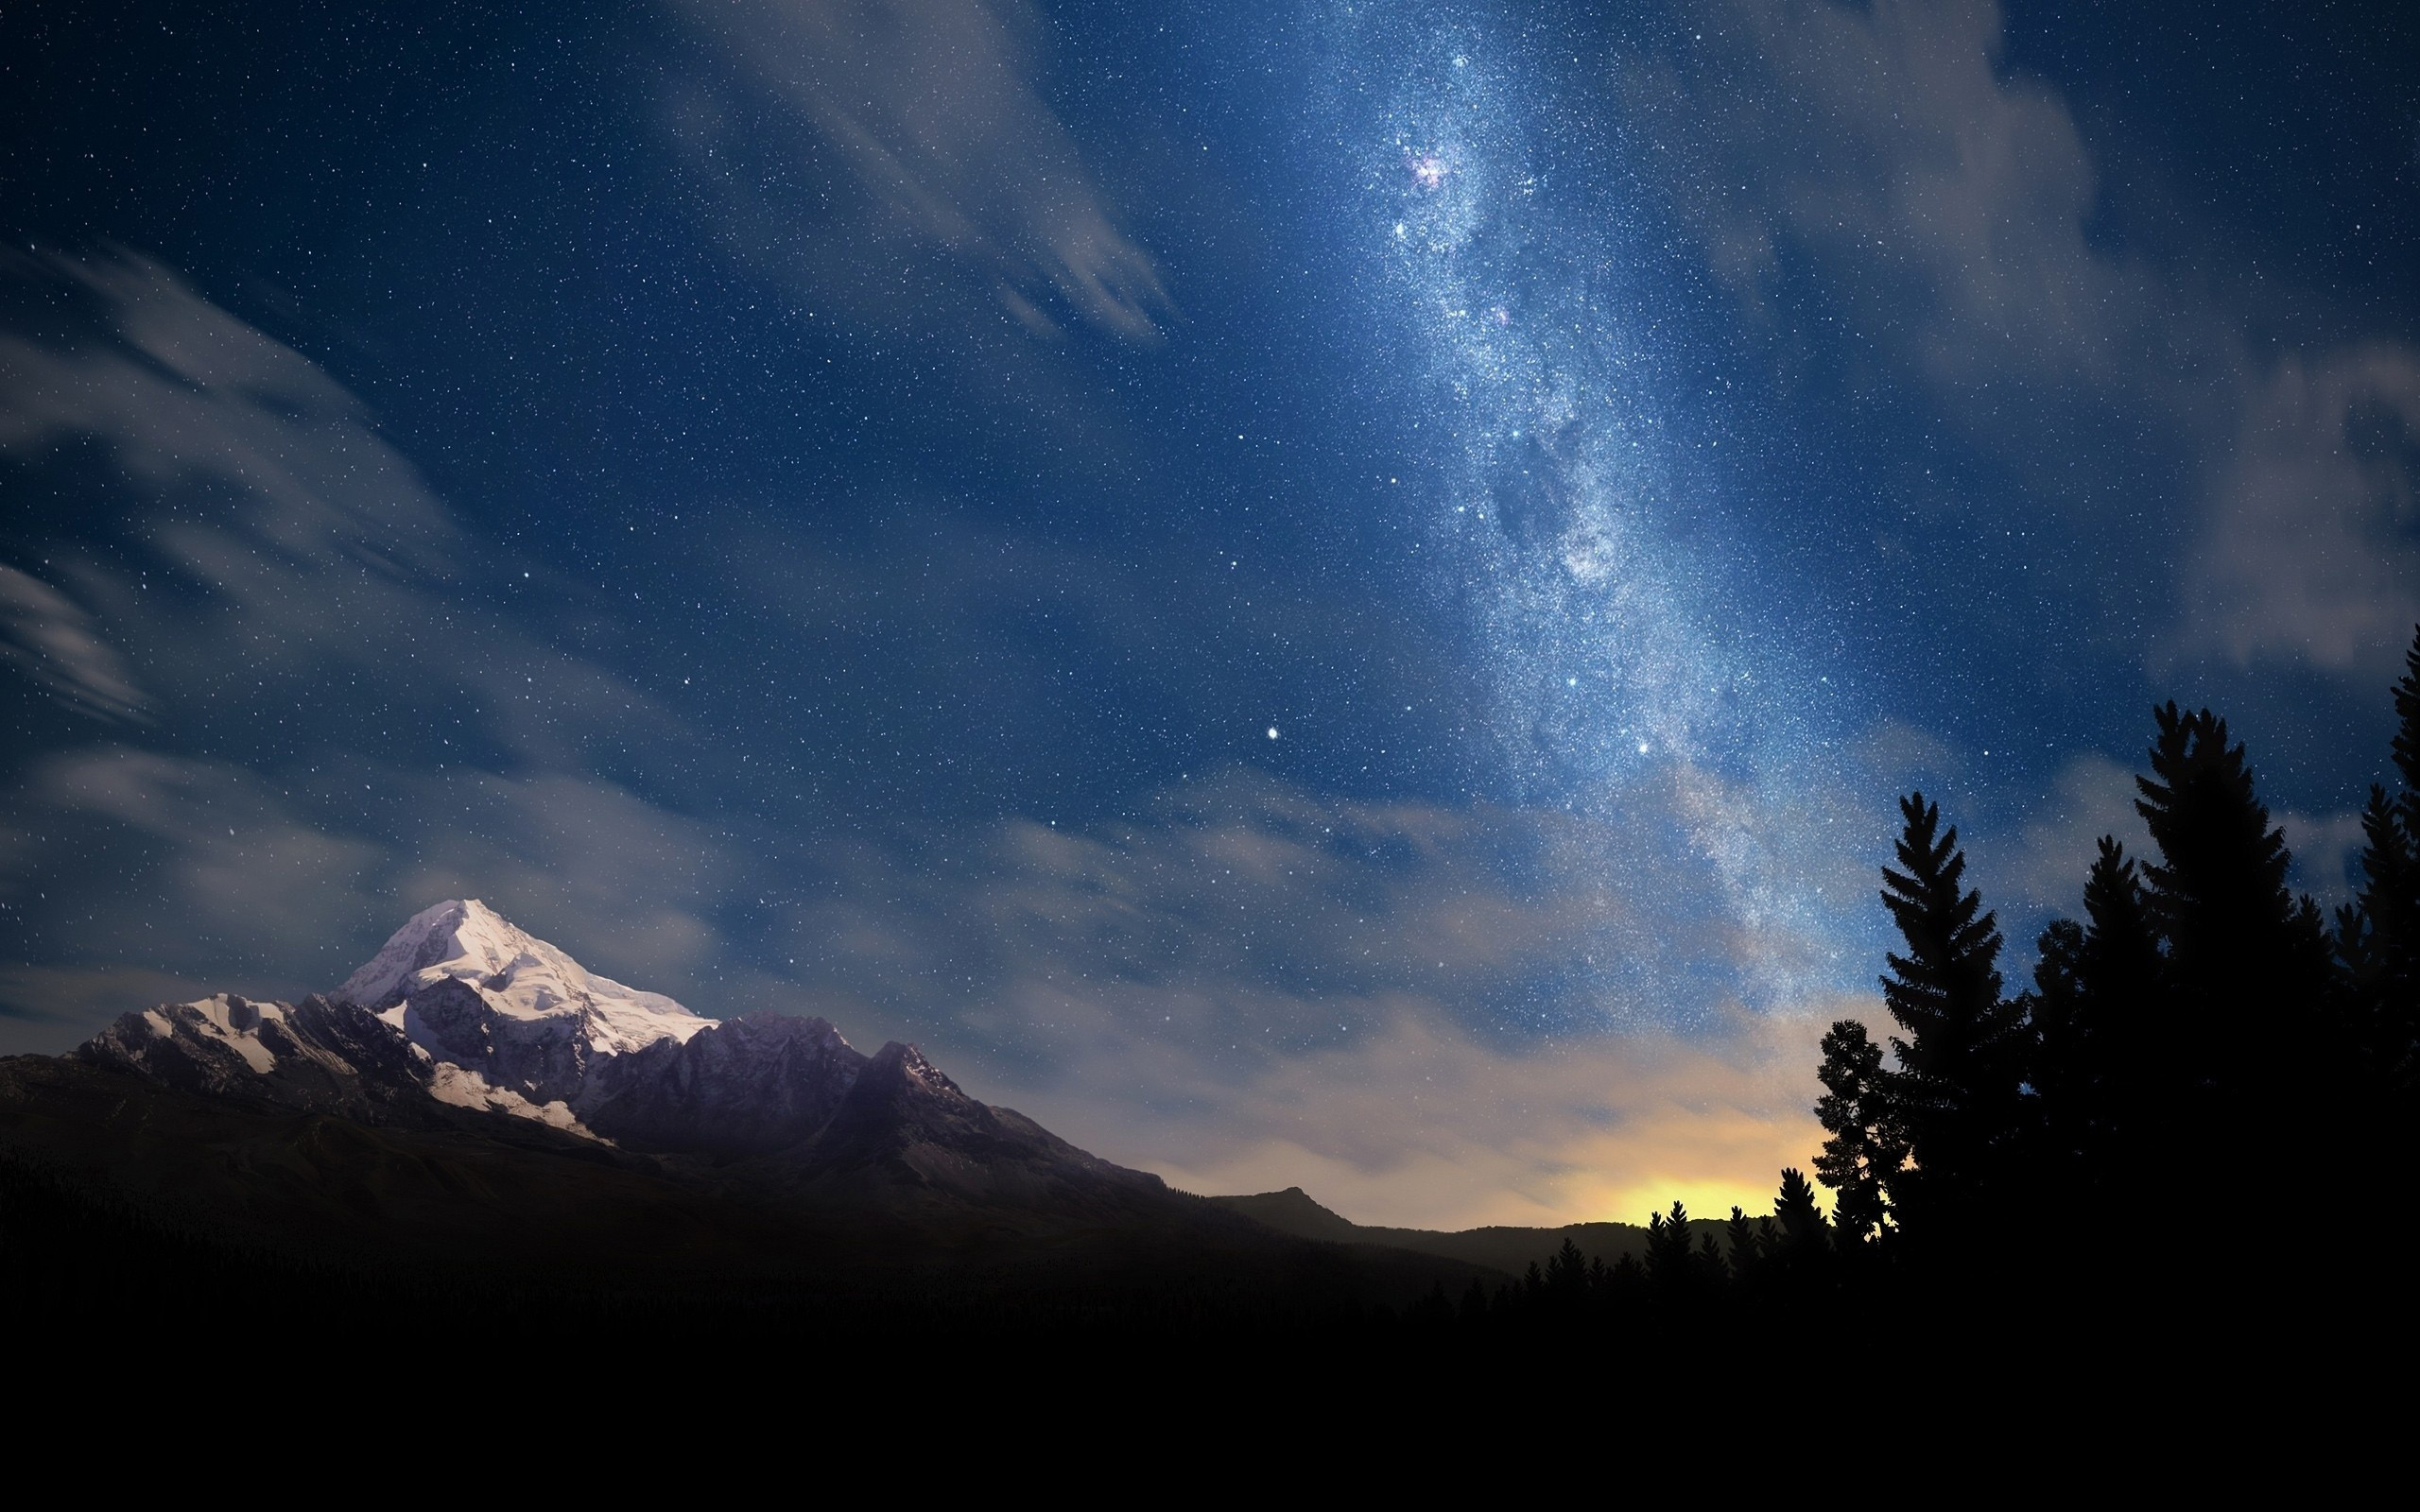 night sky wallpaper stunning